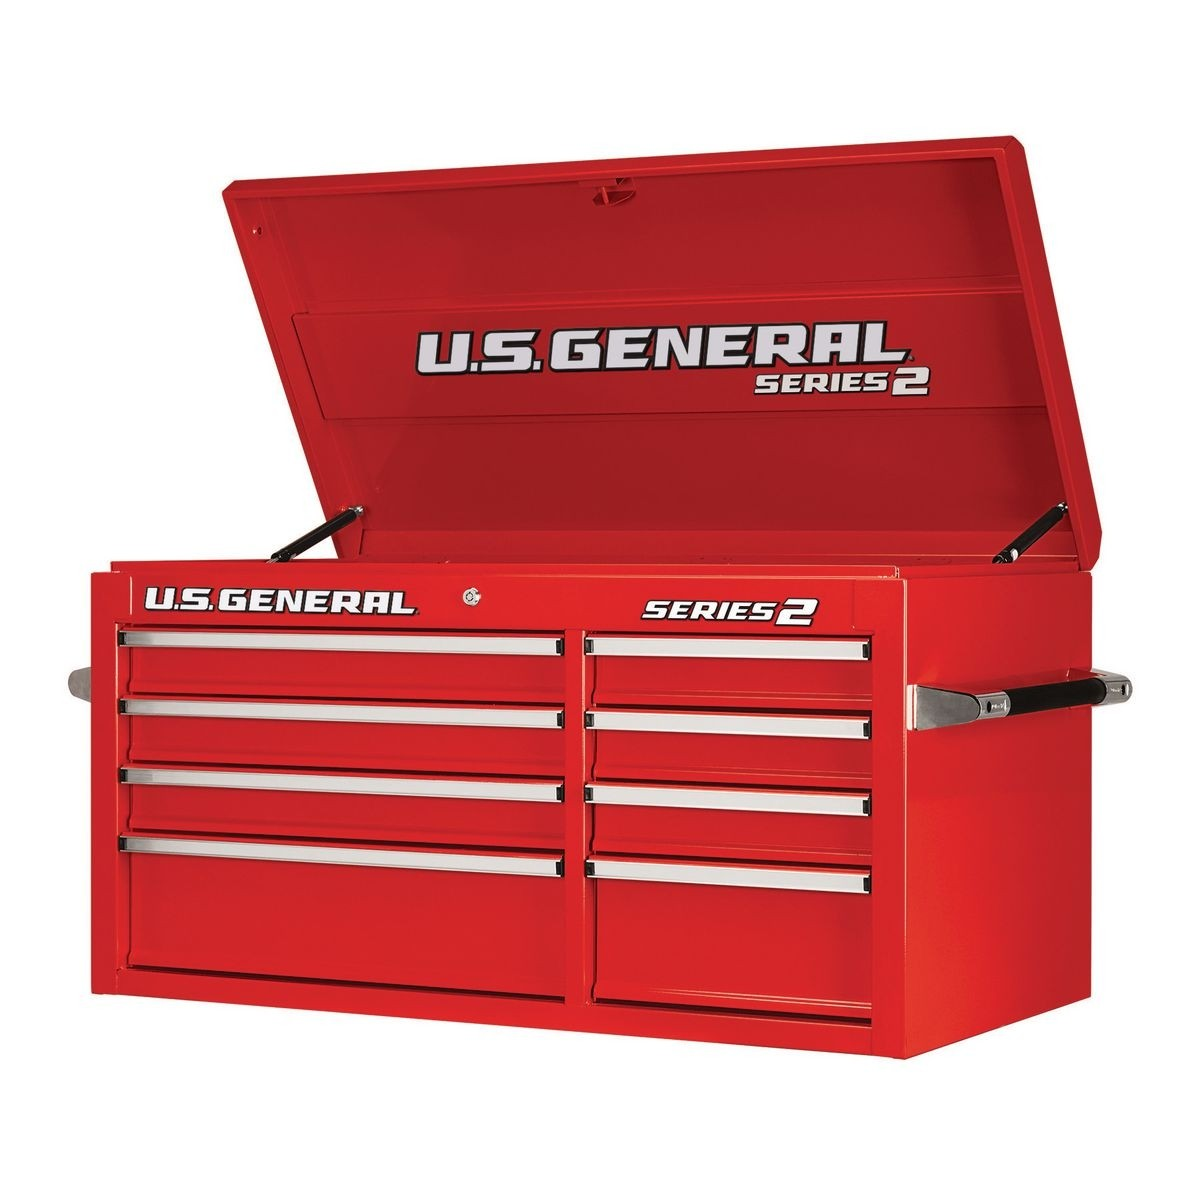 U.S. GENERAL 44 In. Double Bank Top Chest – Red – Item 64280 / 64158 / 64293